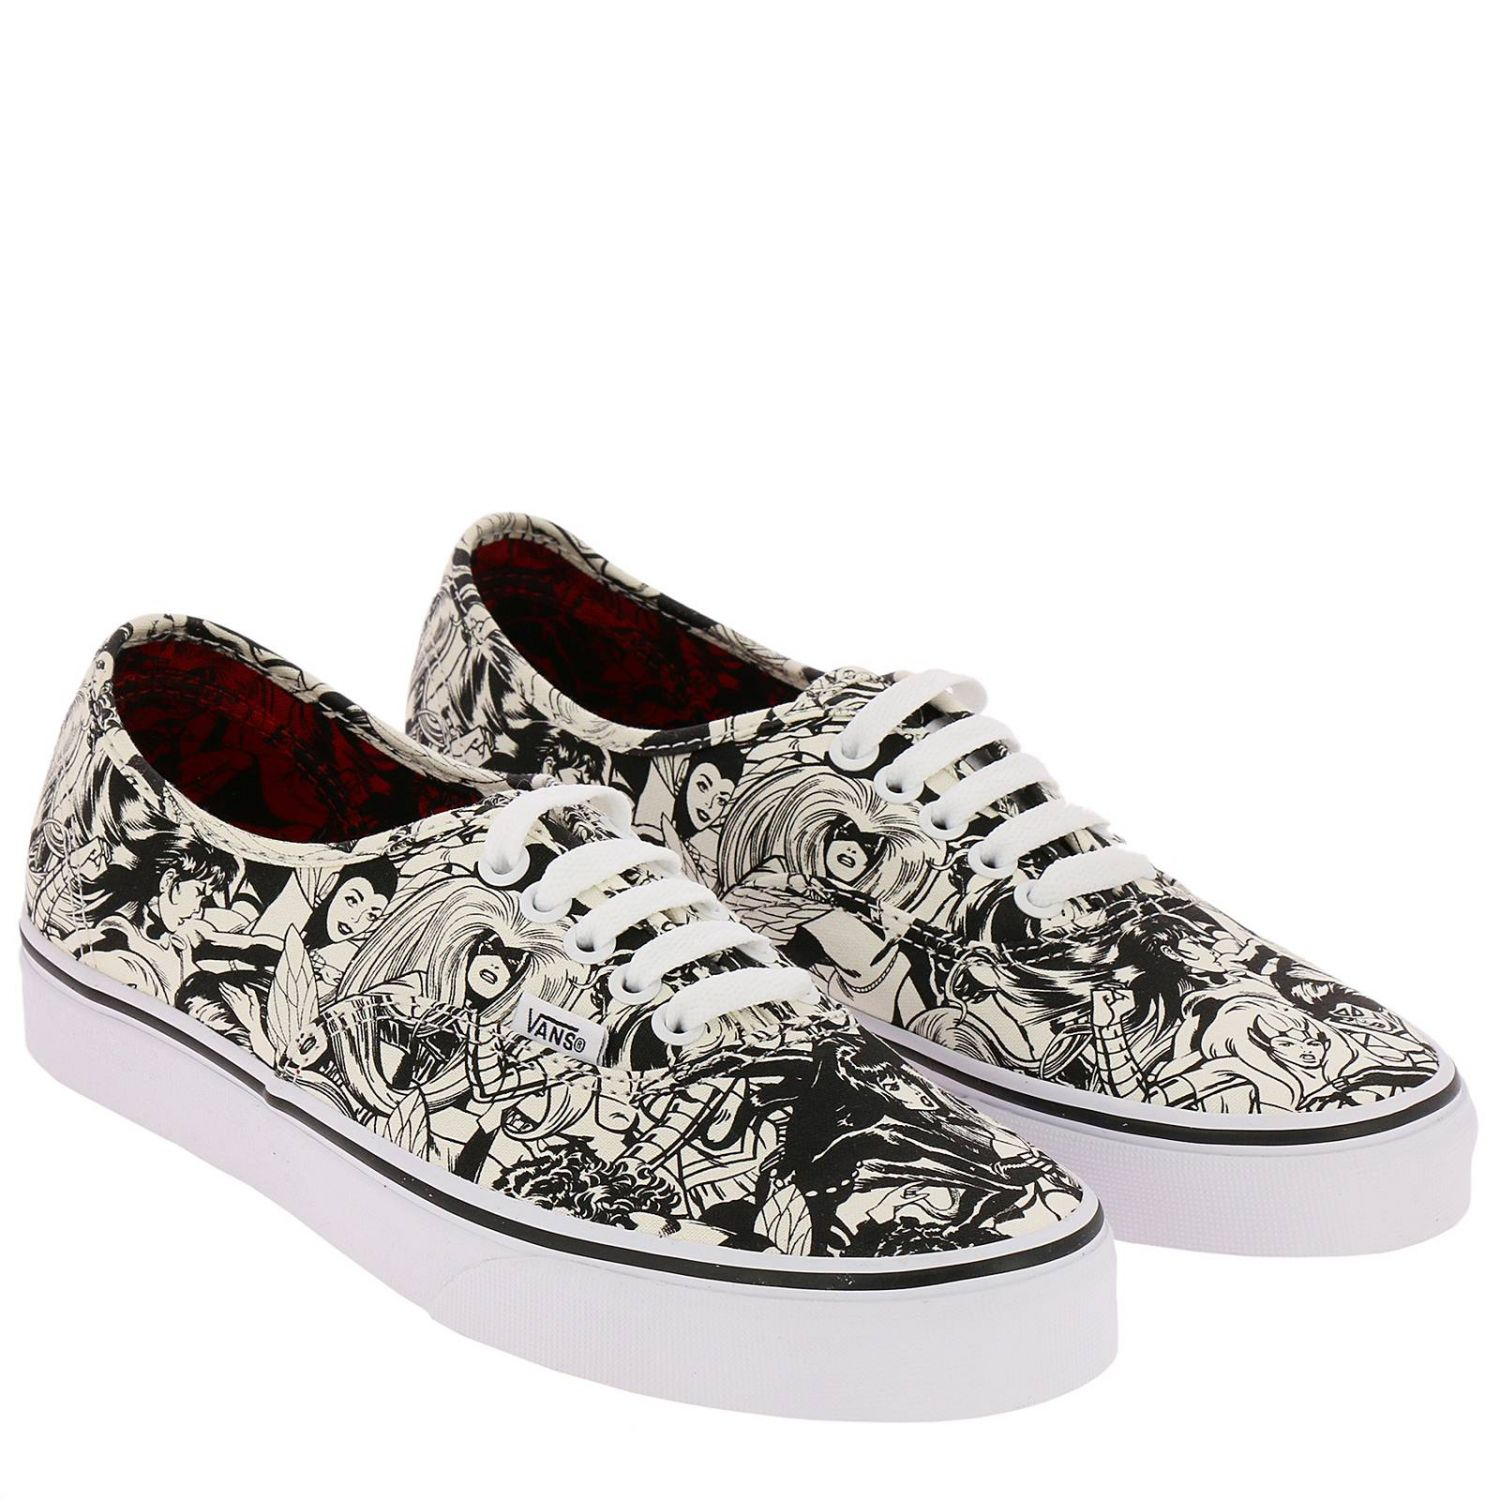 Baskets Authentic limited edition en toile avec impression by Marvel all over